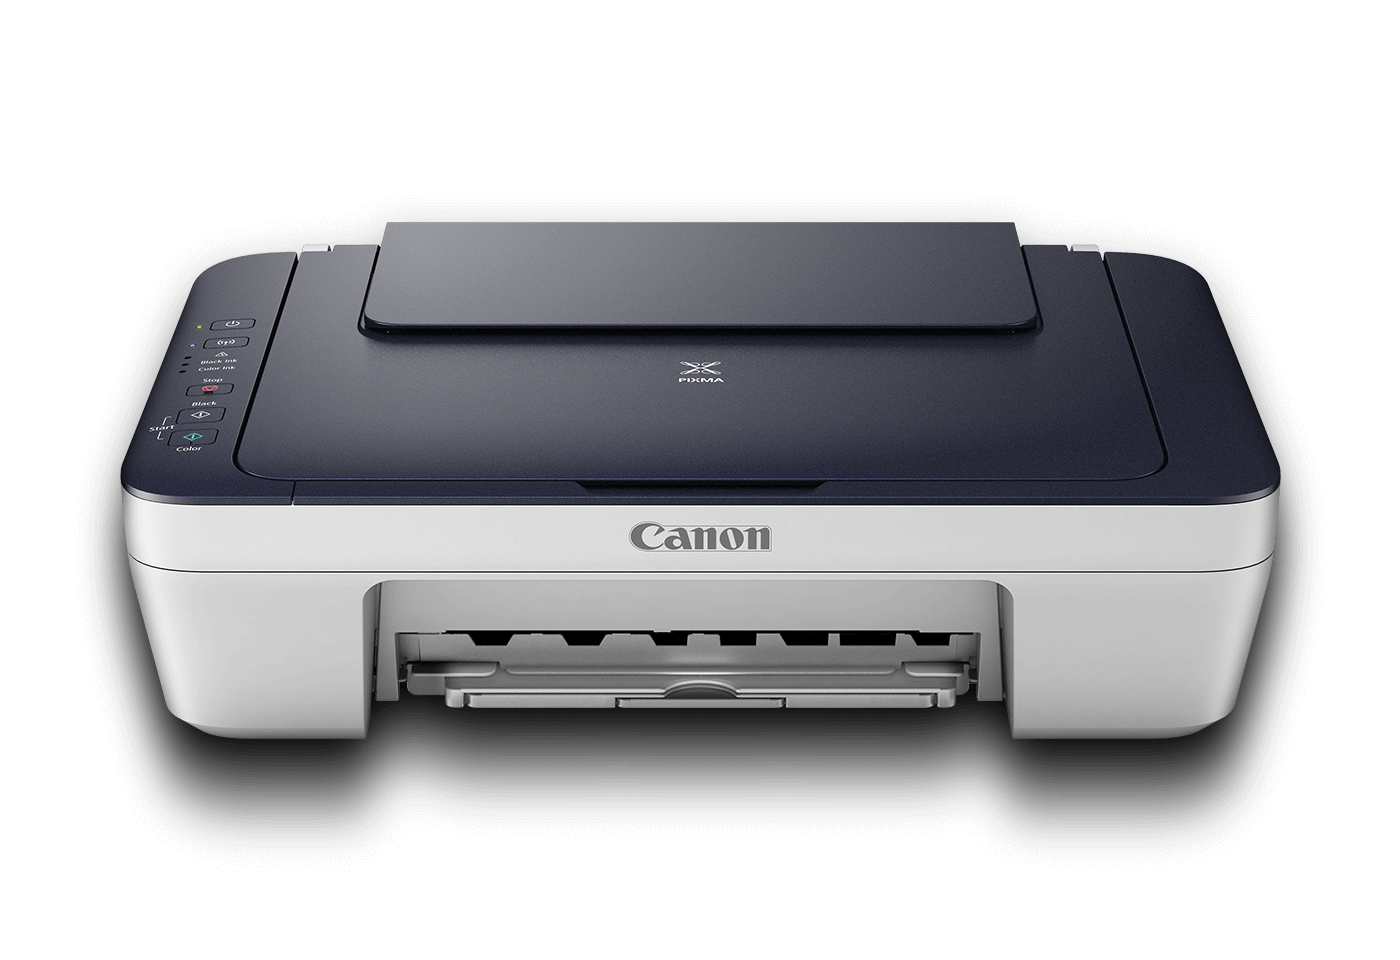 Canon PIXMA MG2965 Inkjet All-in-One printer white with blue lid front